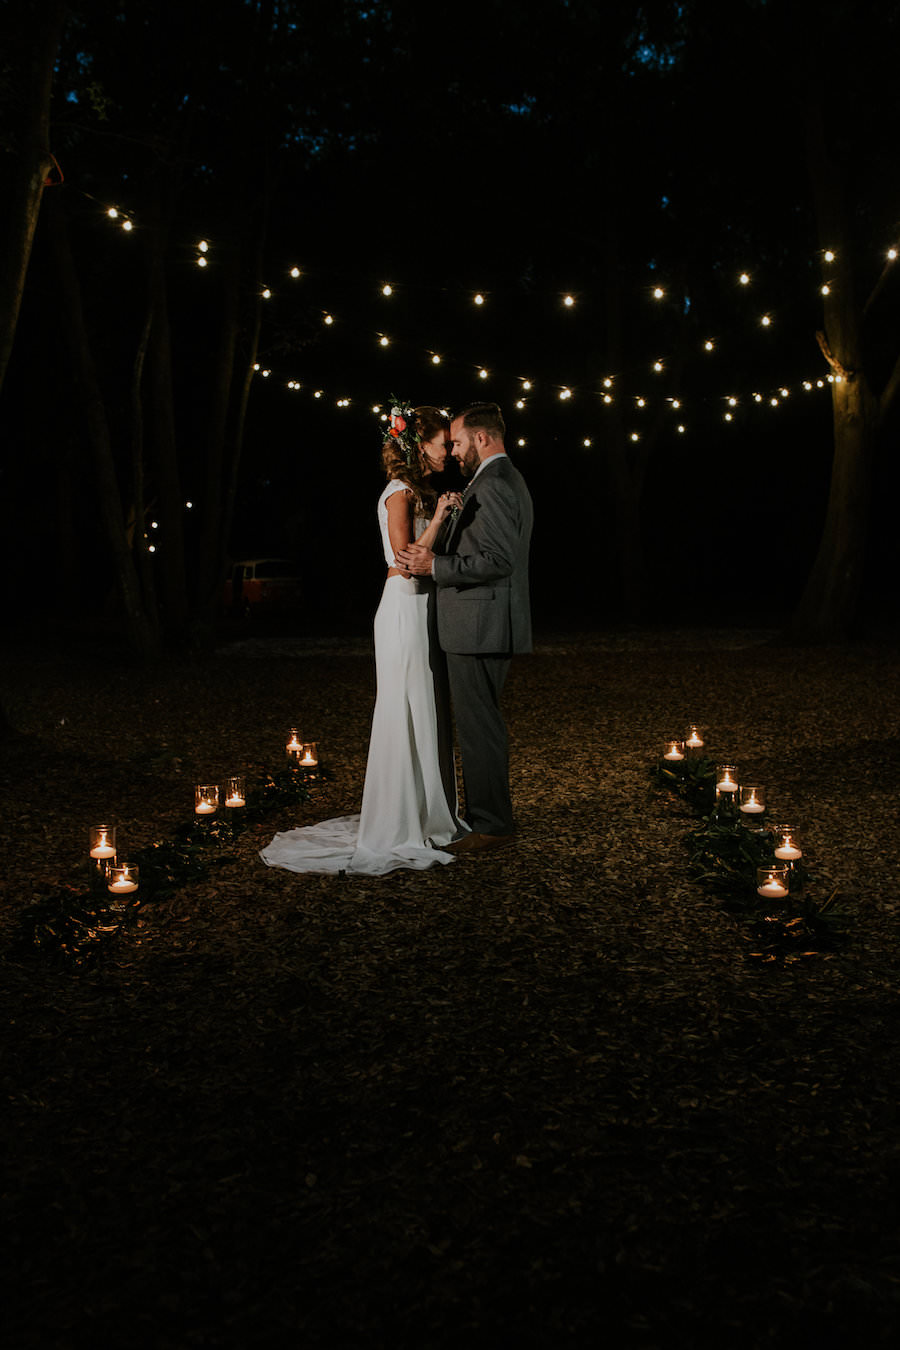 Bride and Groom Wedding Portrait with in Forest with Market String Lights   Retro Vintage Boho Wedding Inspiration   Planner Glitz Events   Outdoor Venue Casa Lantana   Lighting by Gabro Event Services